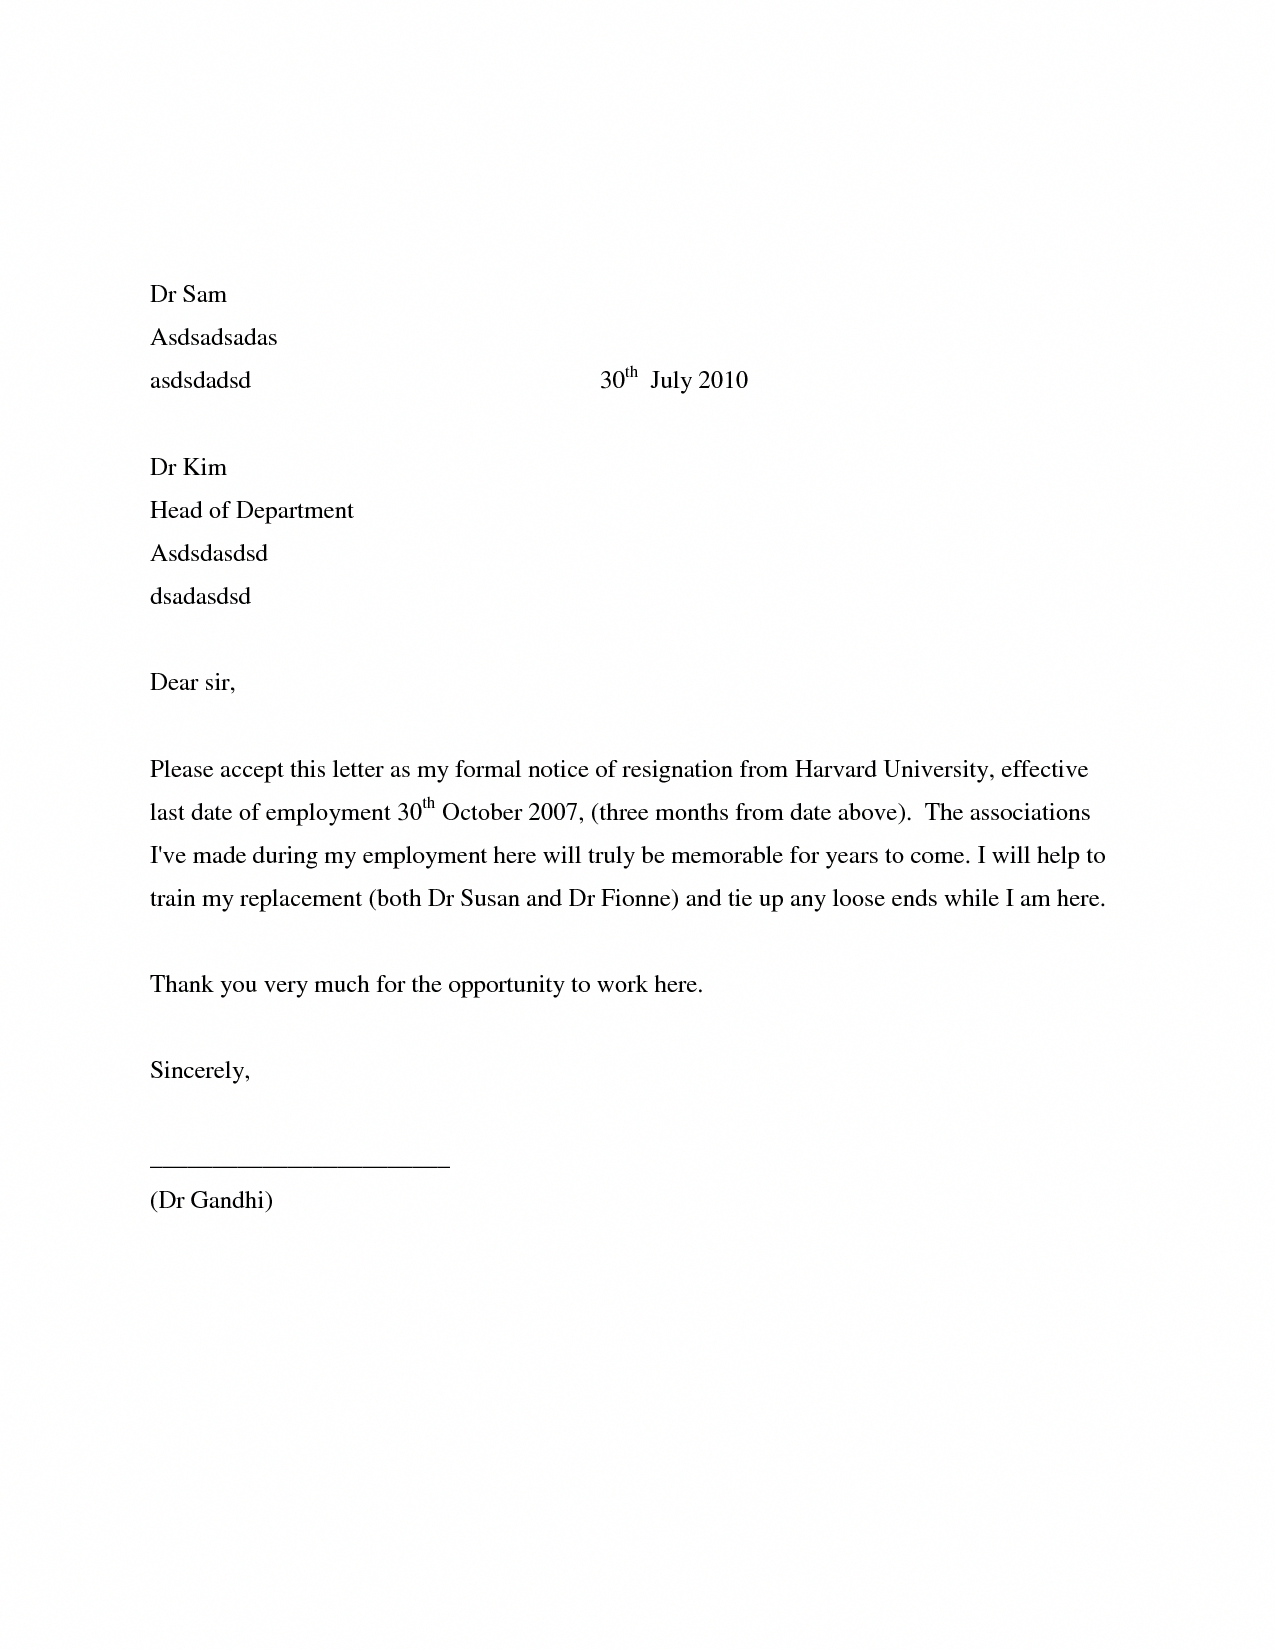 Resignation Letter Samples for Personal Reasons